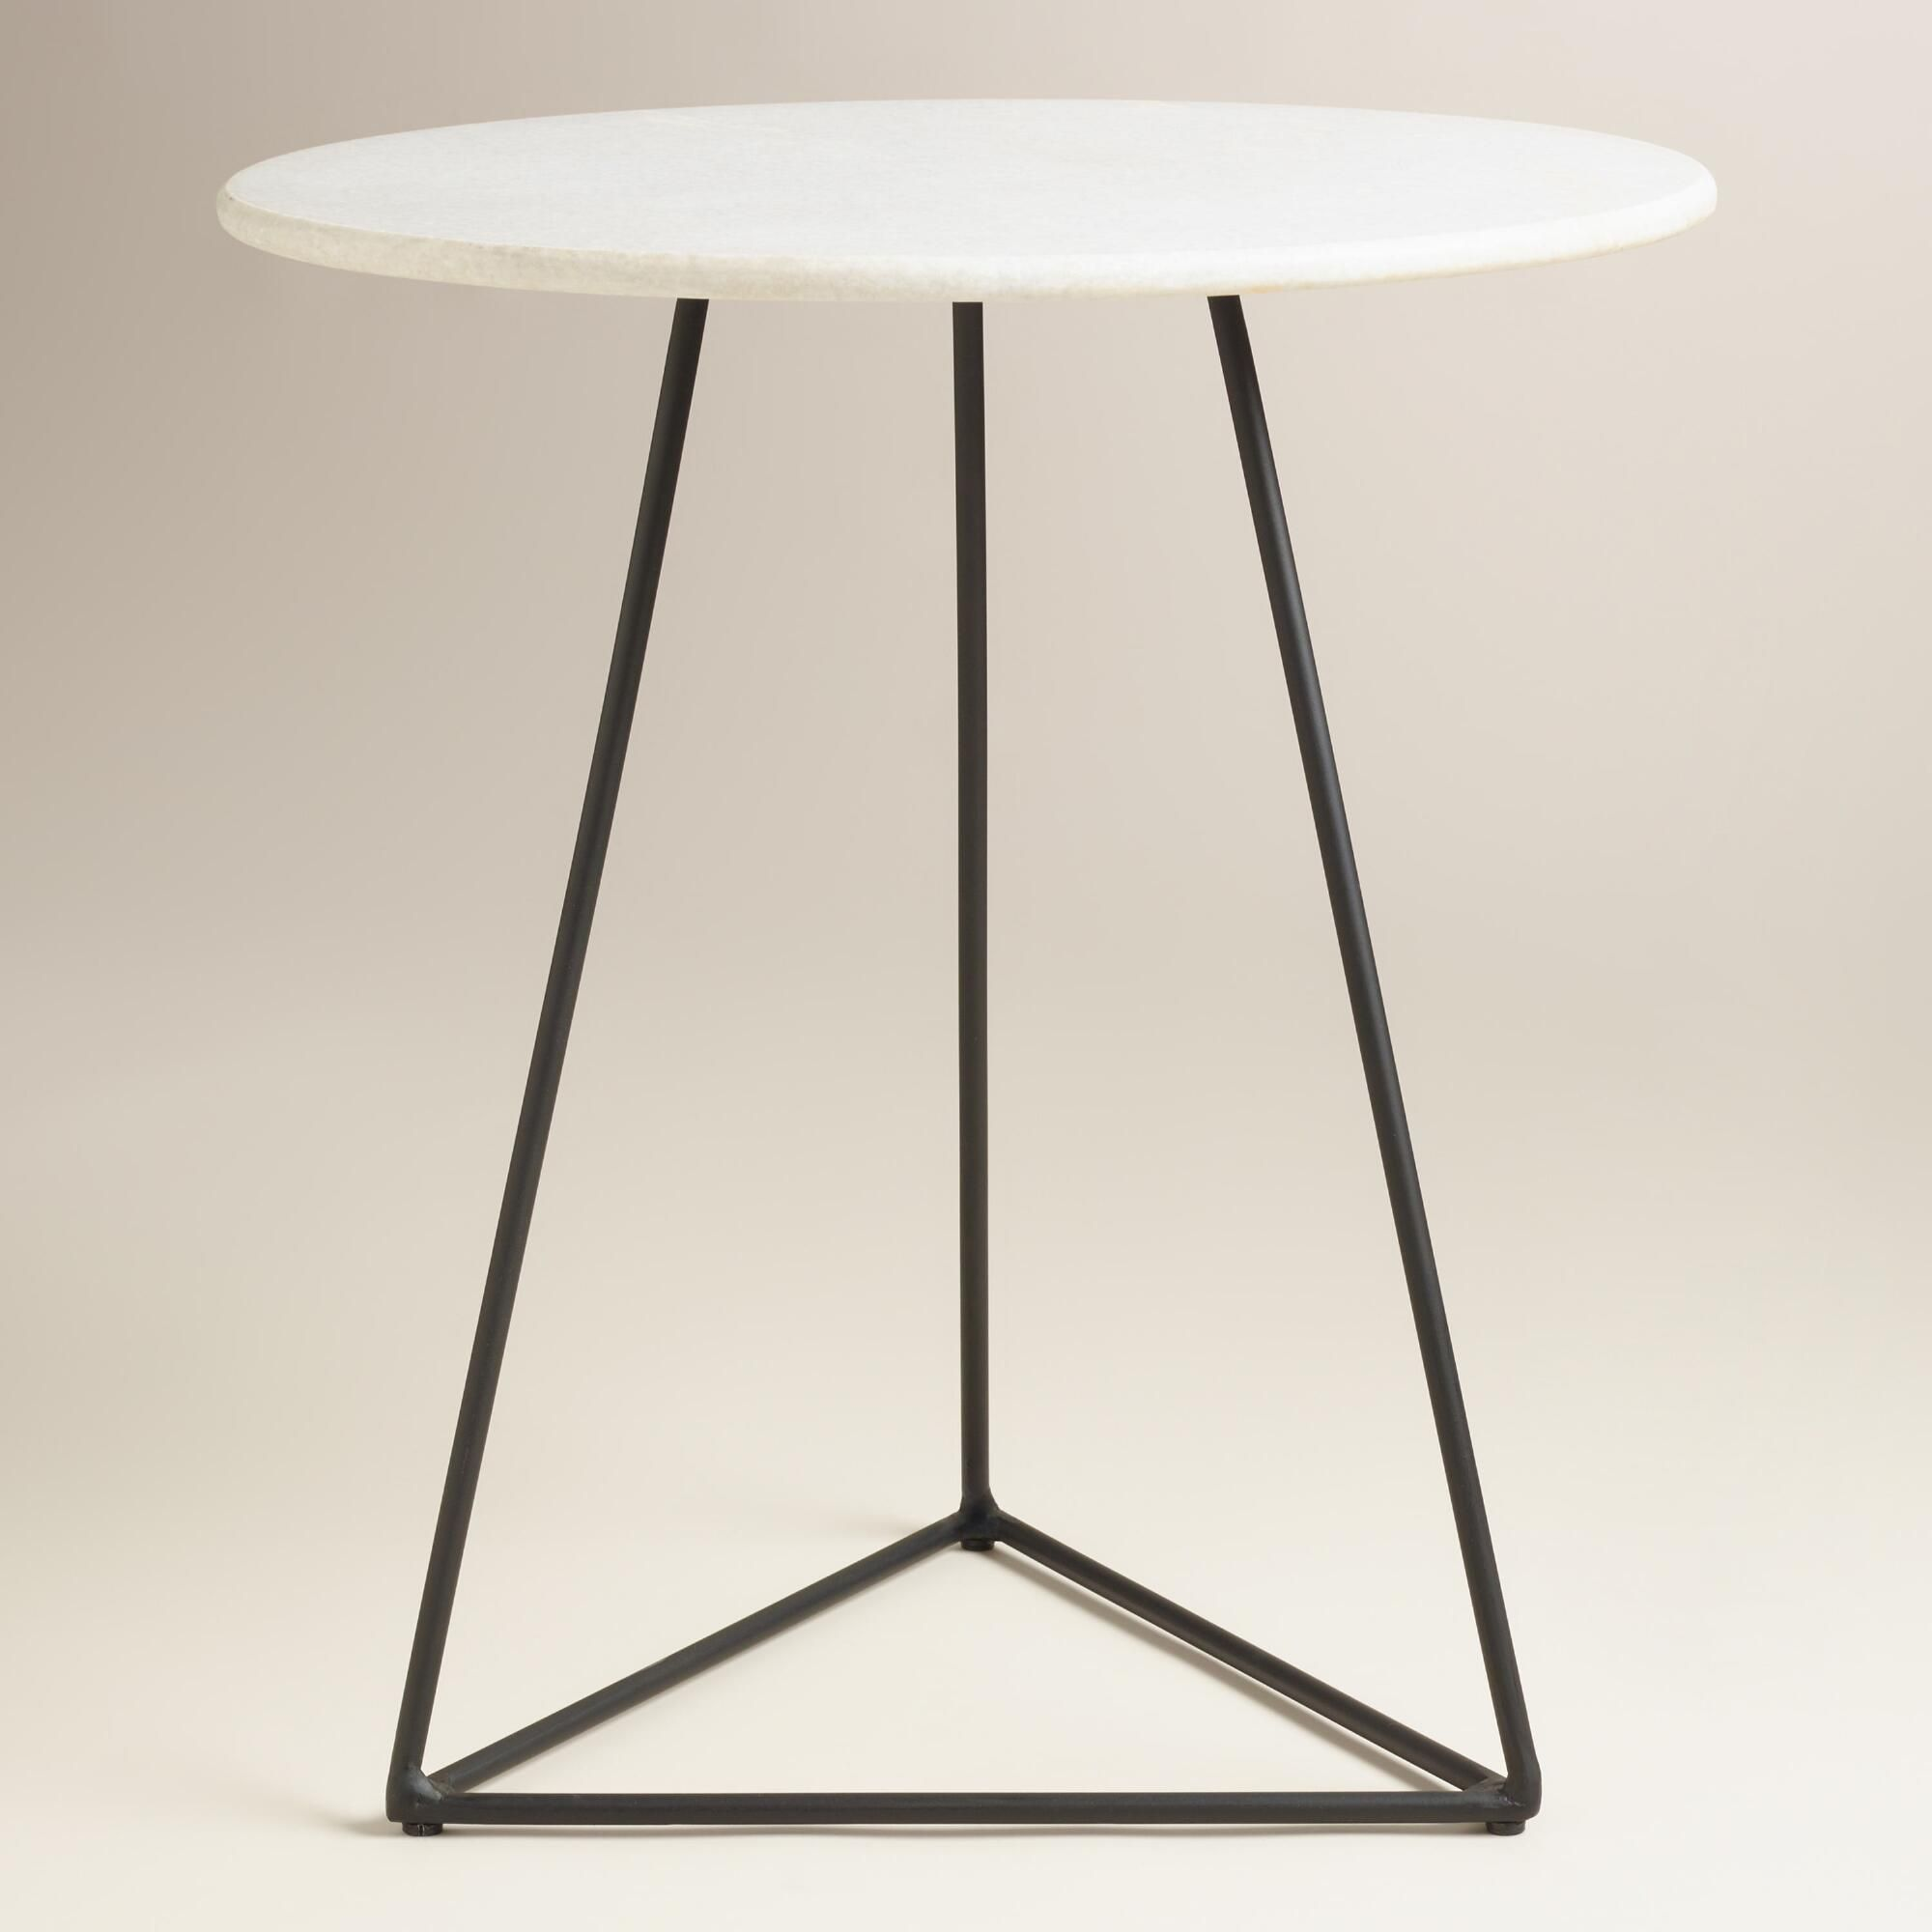 White Marble and Metal Round Accent Table